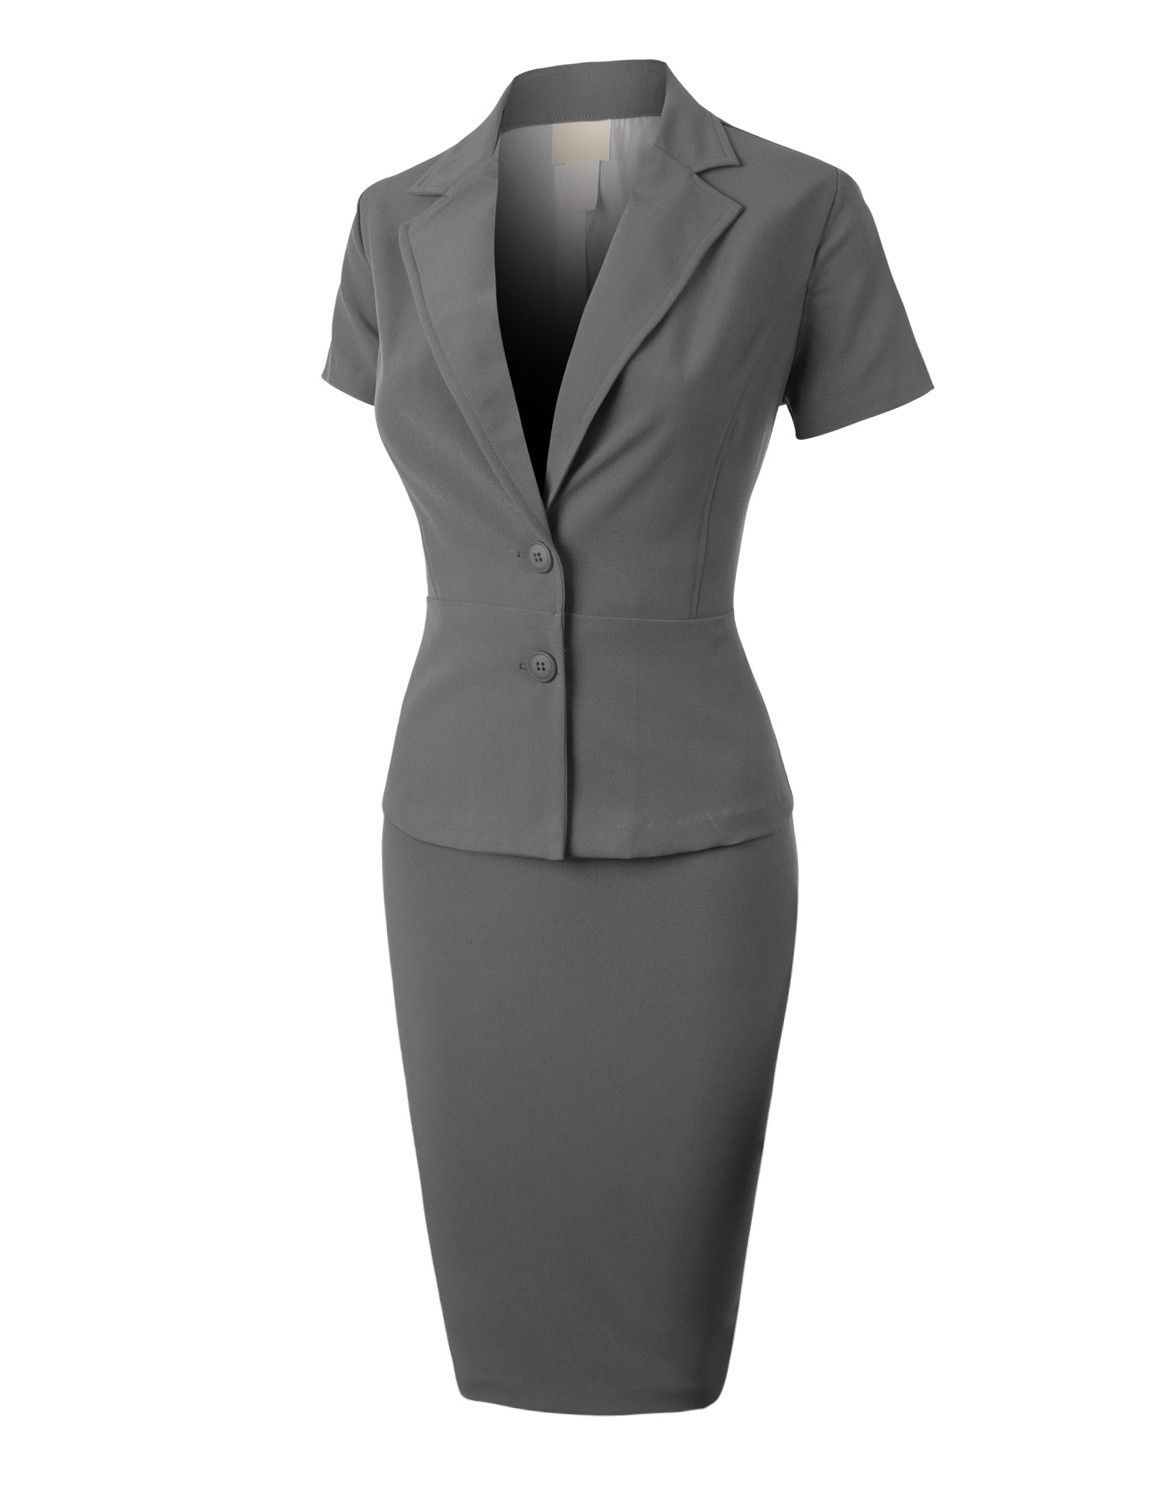 LE3NO Womens Formal Office Business Blazer and Skirt Suit Set Made in USA